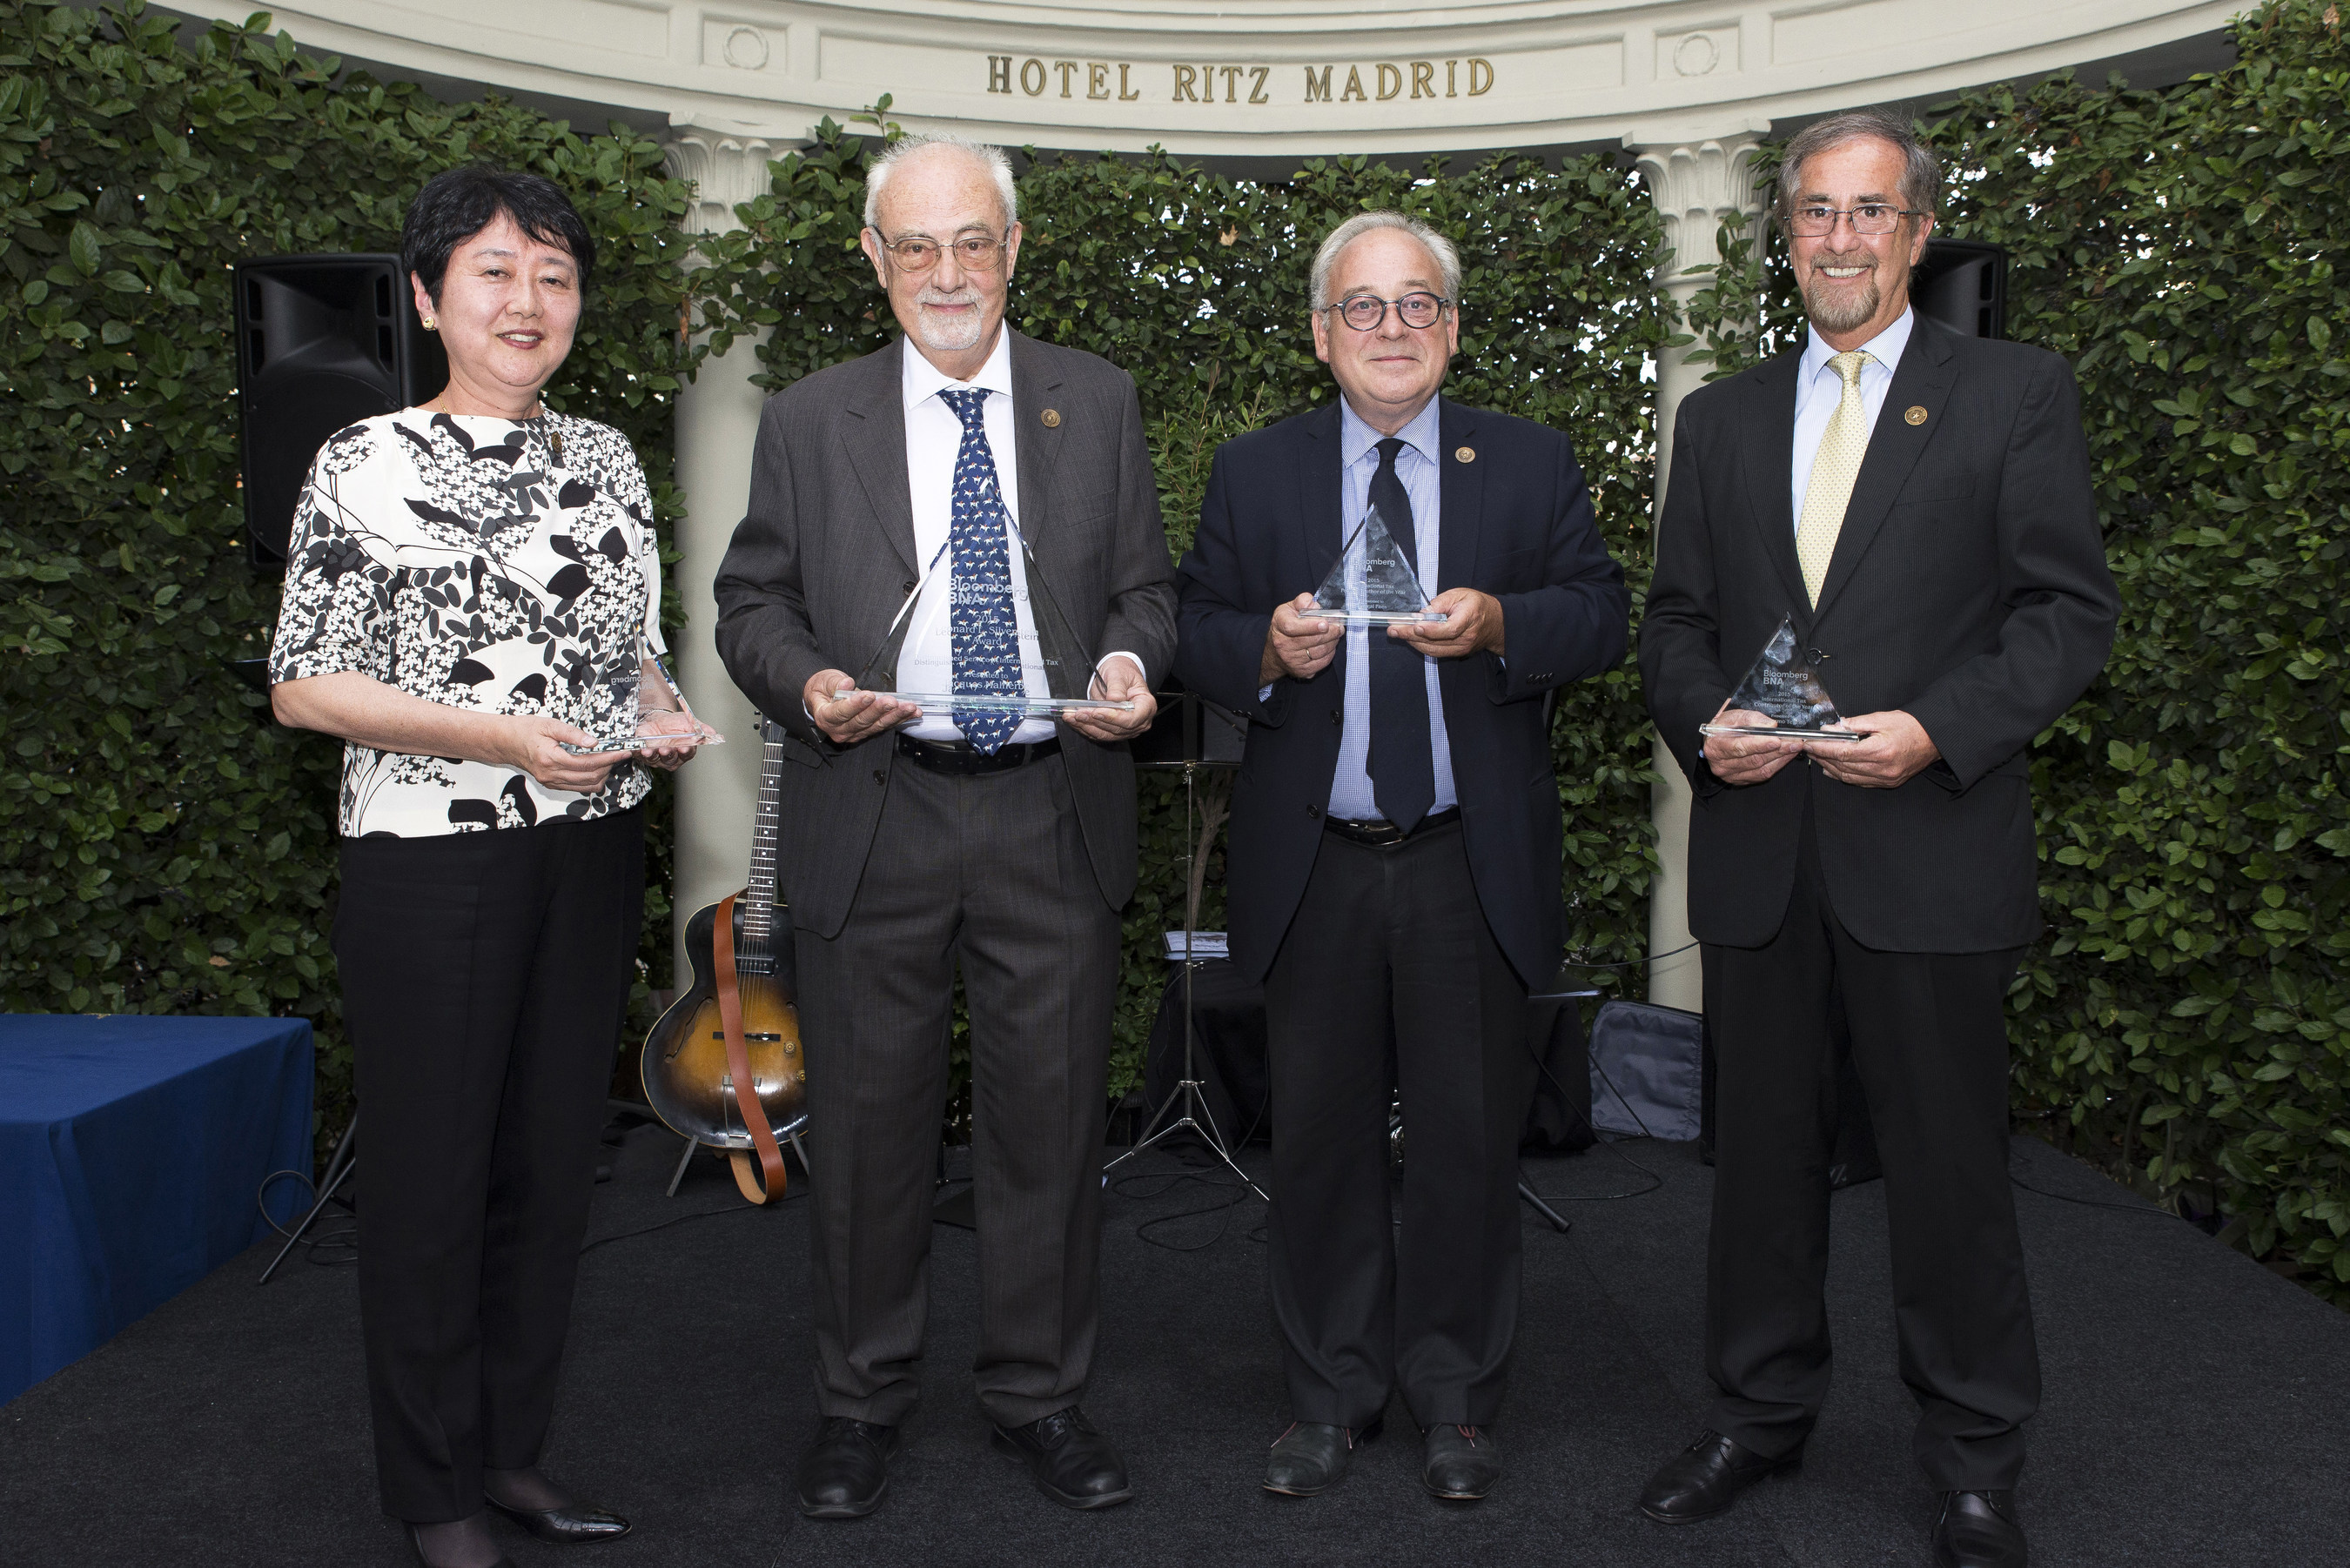 Bloomberg BNA 2015 International Tax Award Recipients: Yuko Miyazaki, Jacques Malherbe, Pascal Faes, and Guillermo Teijeiro (left to right).